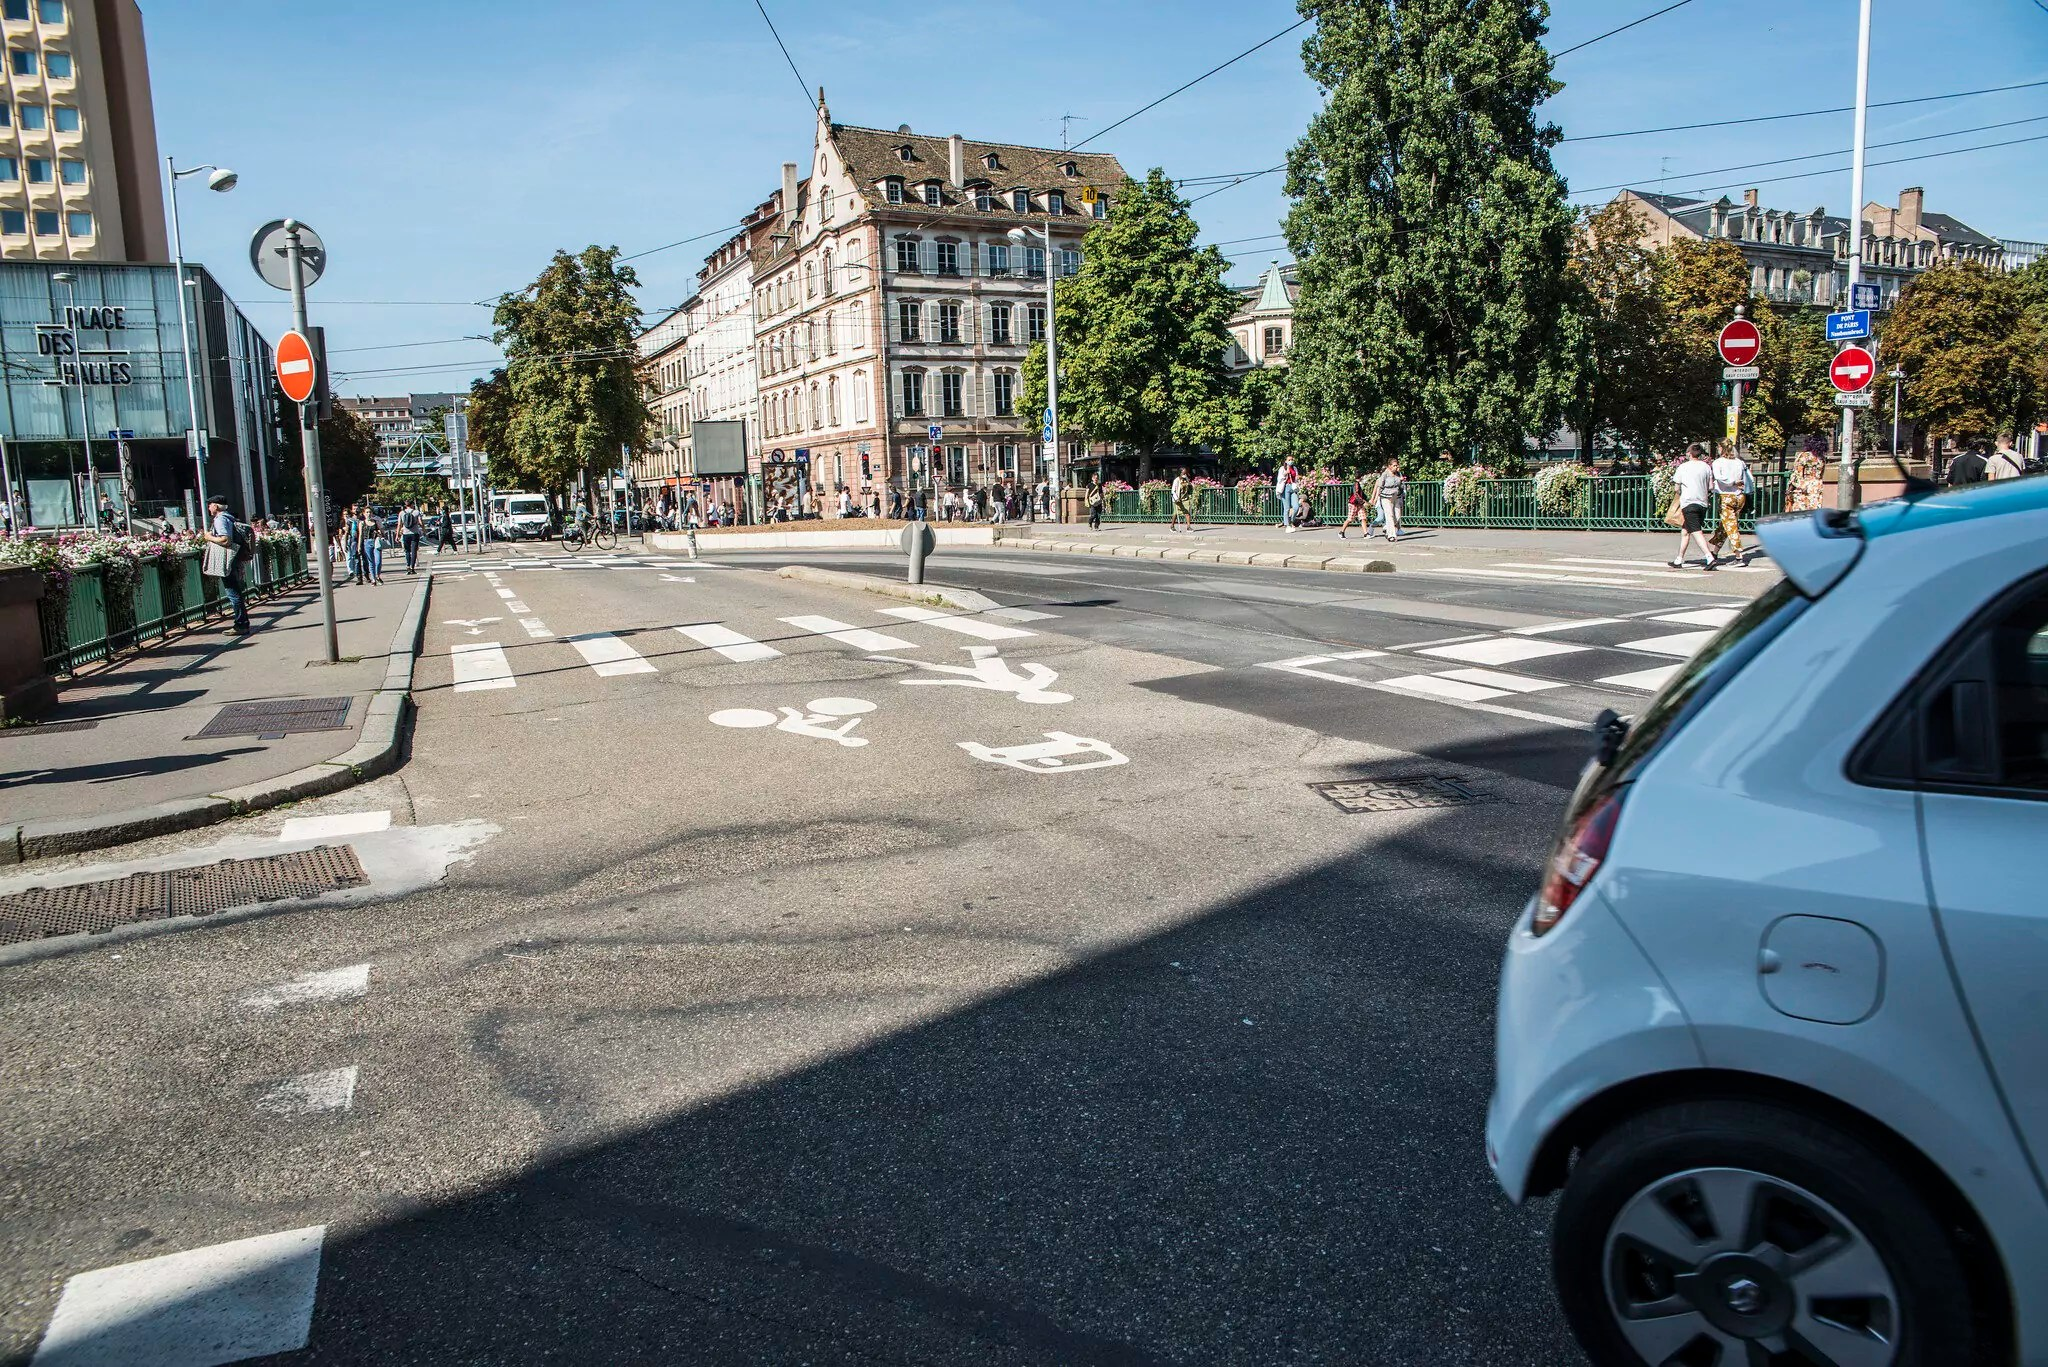 Velo_strasbourg_ring_cyclable_contournement_martin_lelievre_rue89_strasbourg